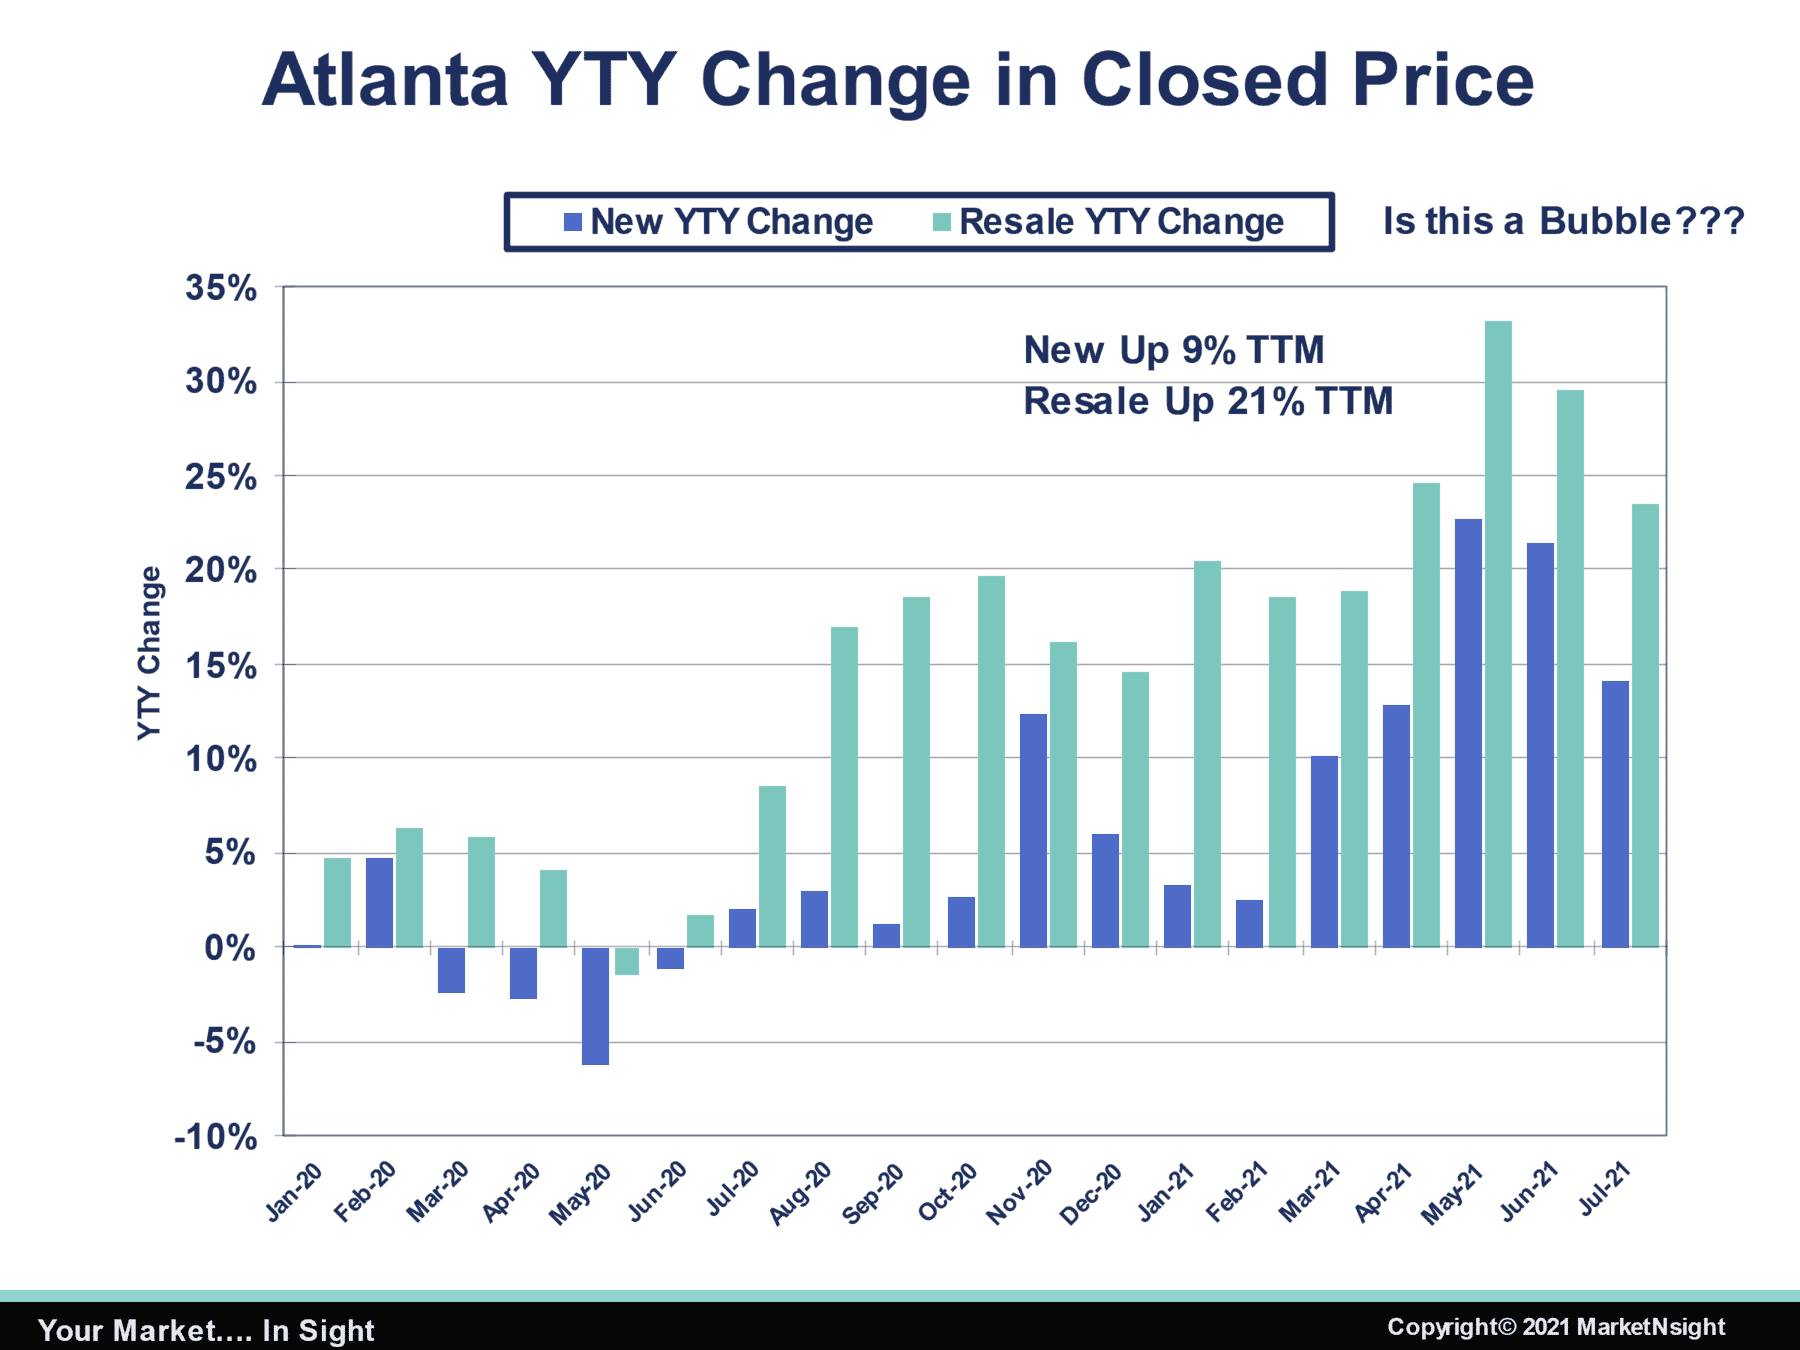 MarketNsight chart showing Atlanta YTY change in closed price